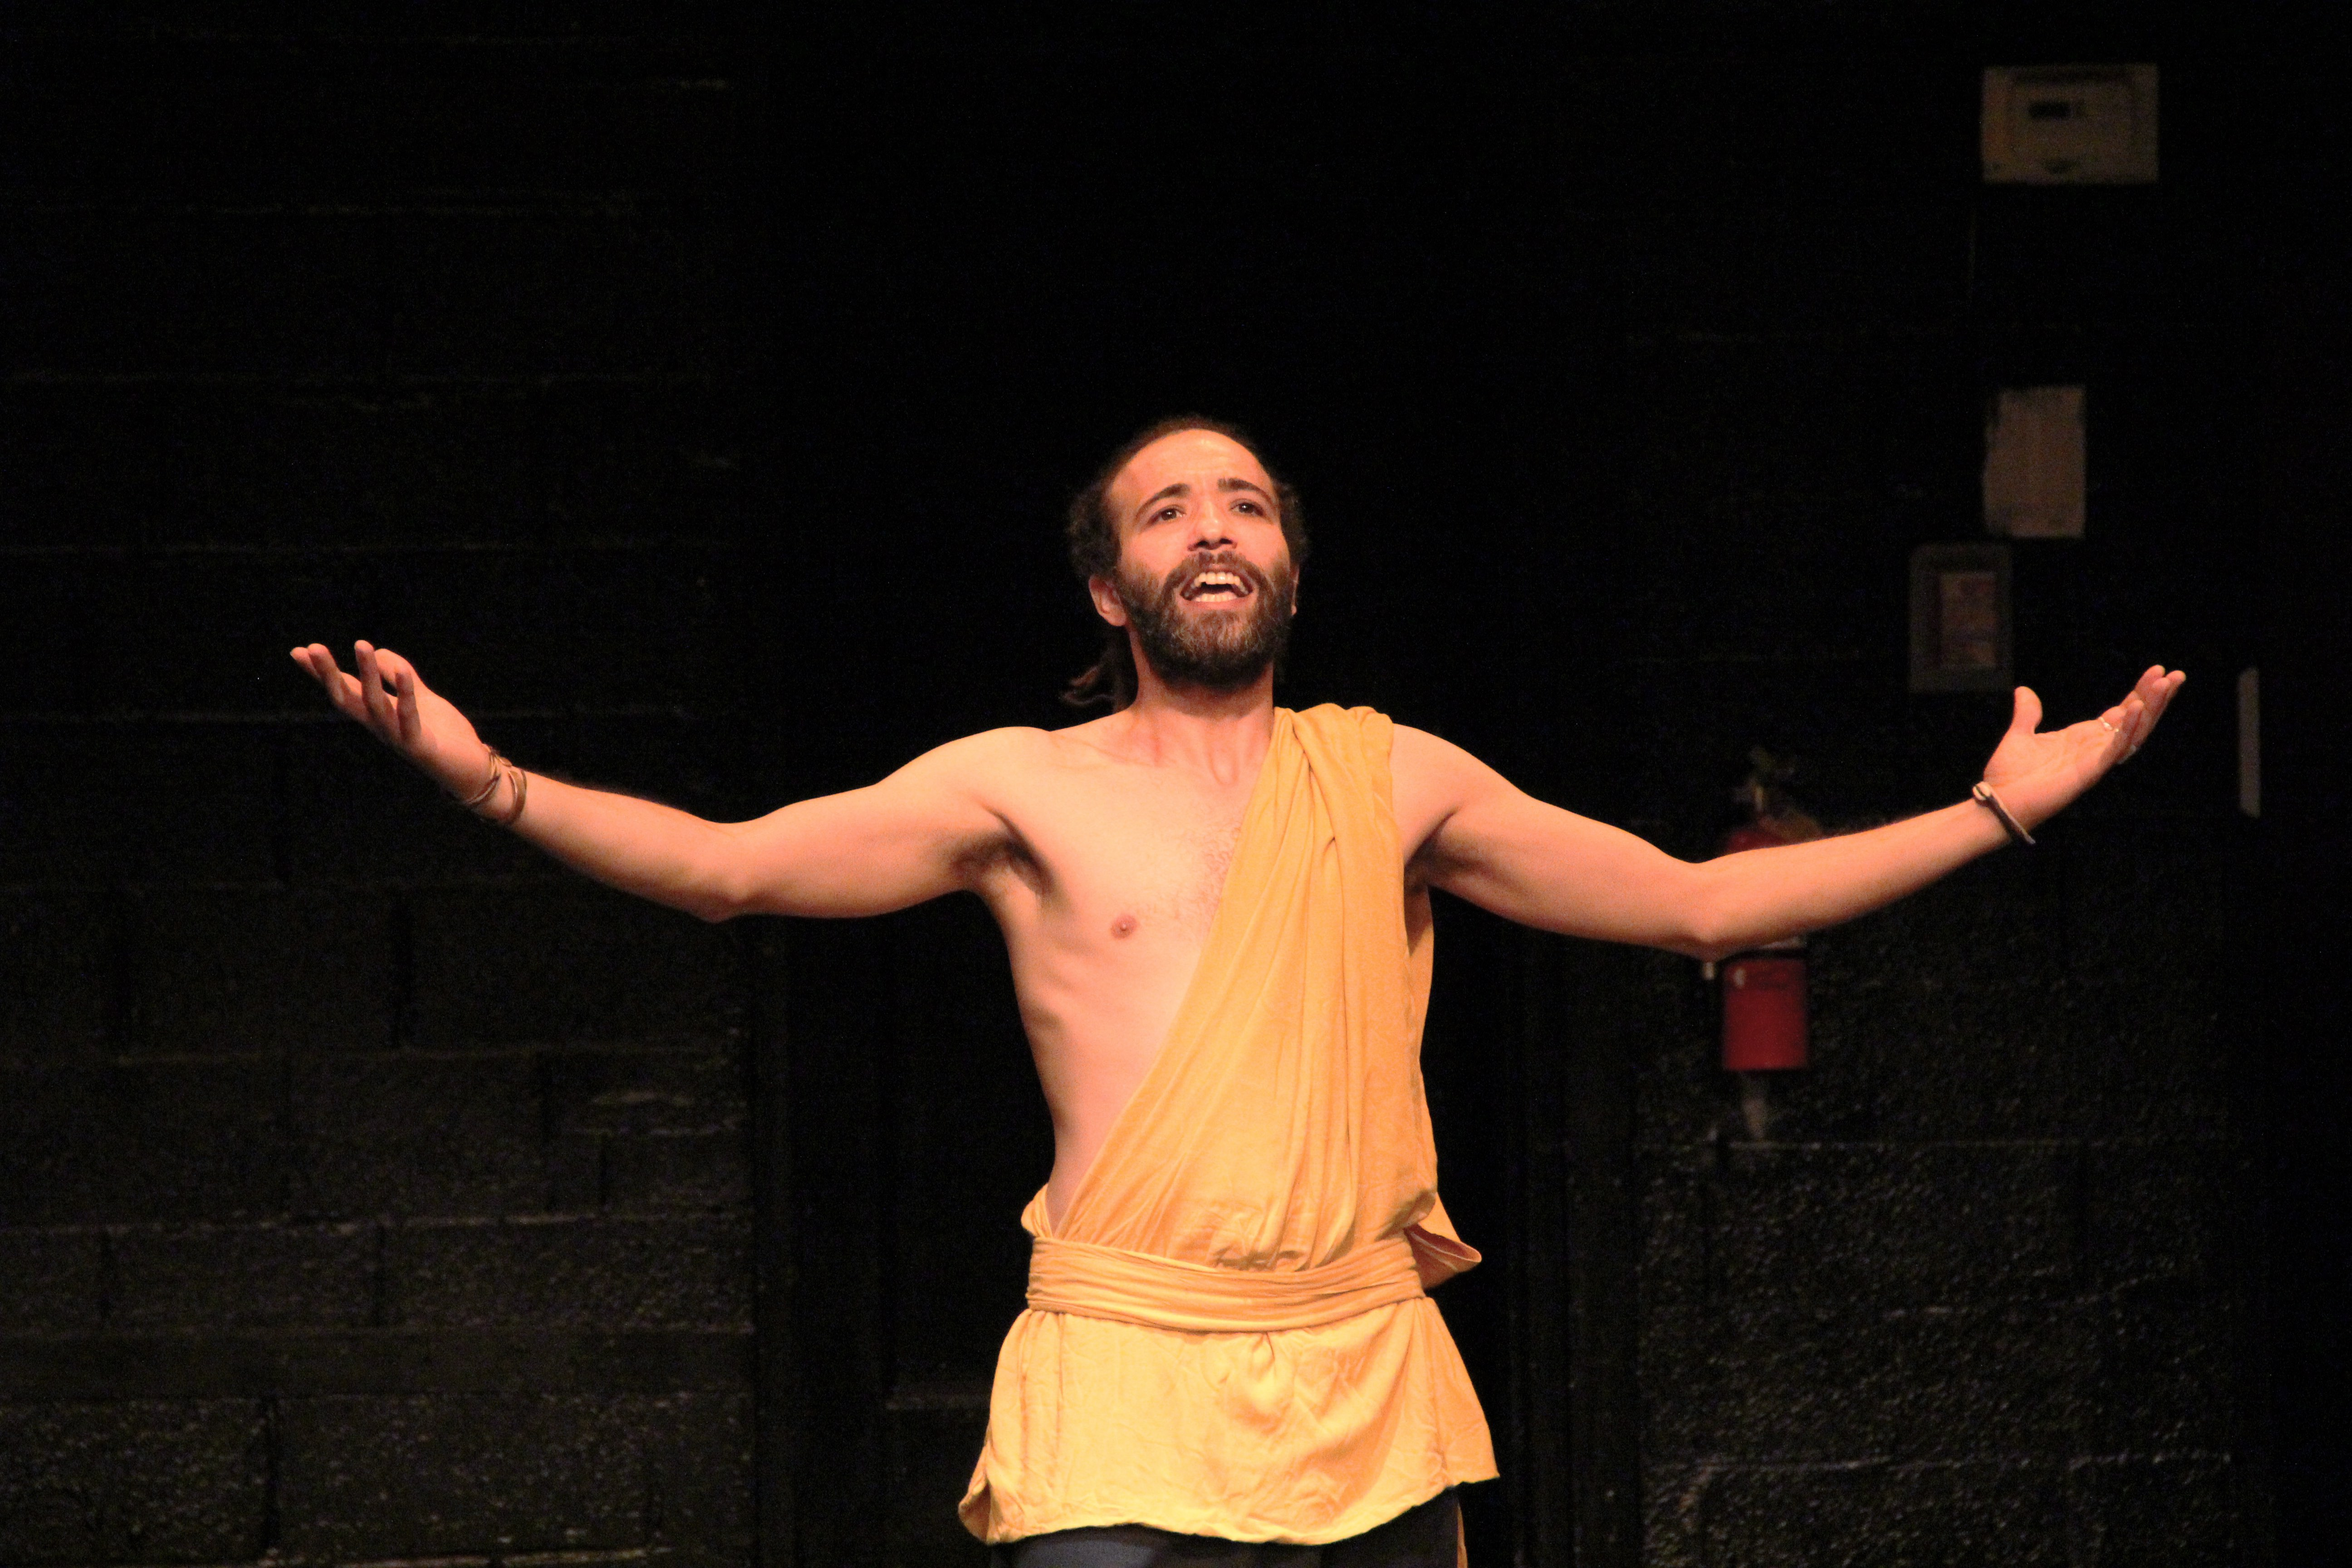 shirtless performer with arms outstretched looking up